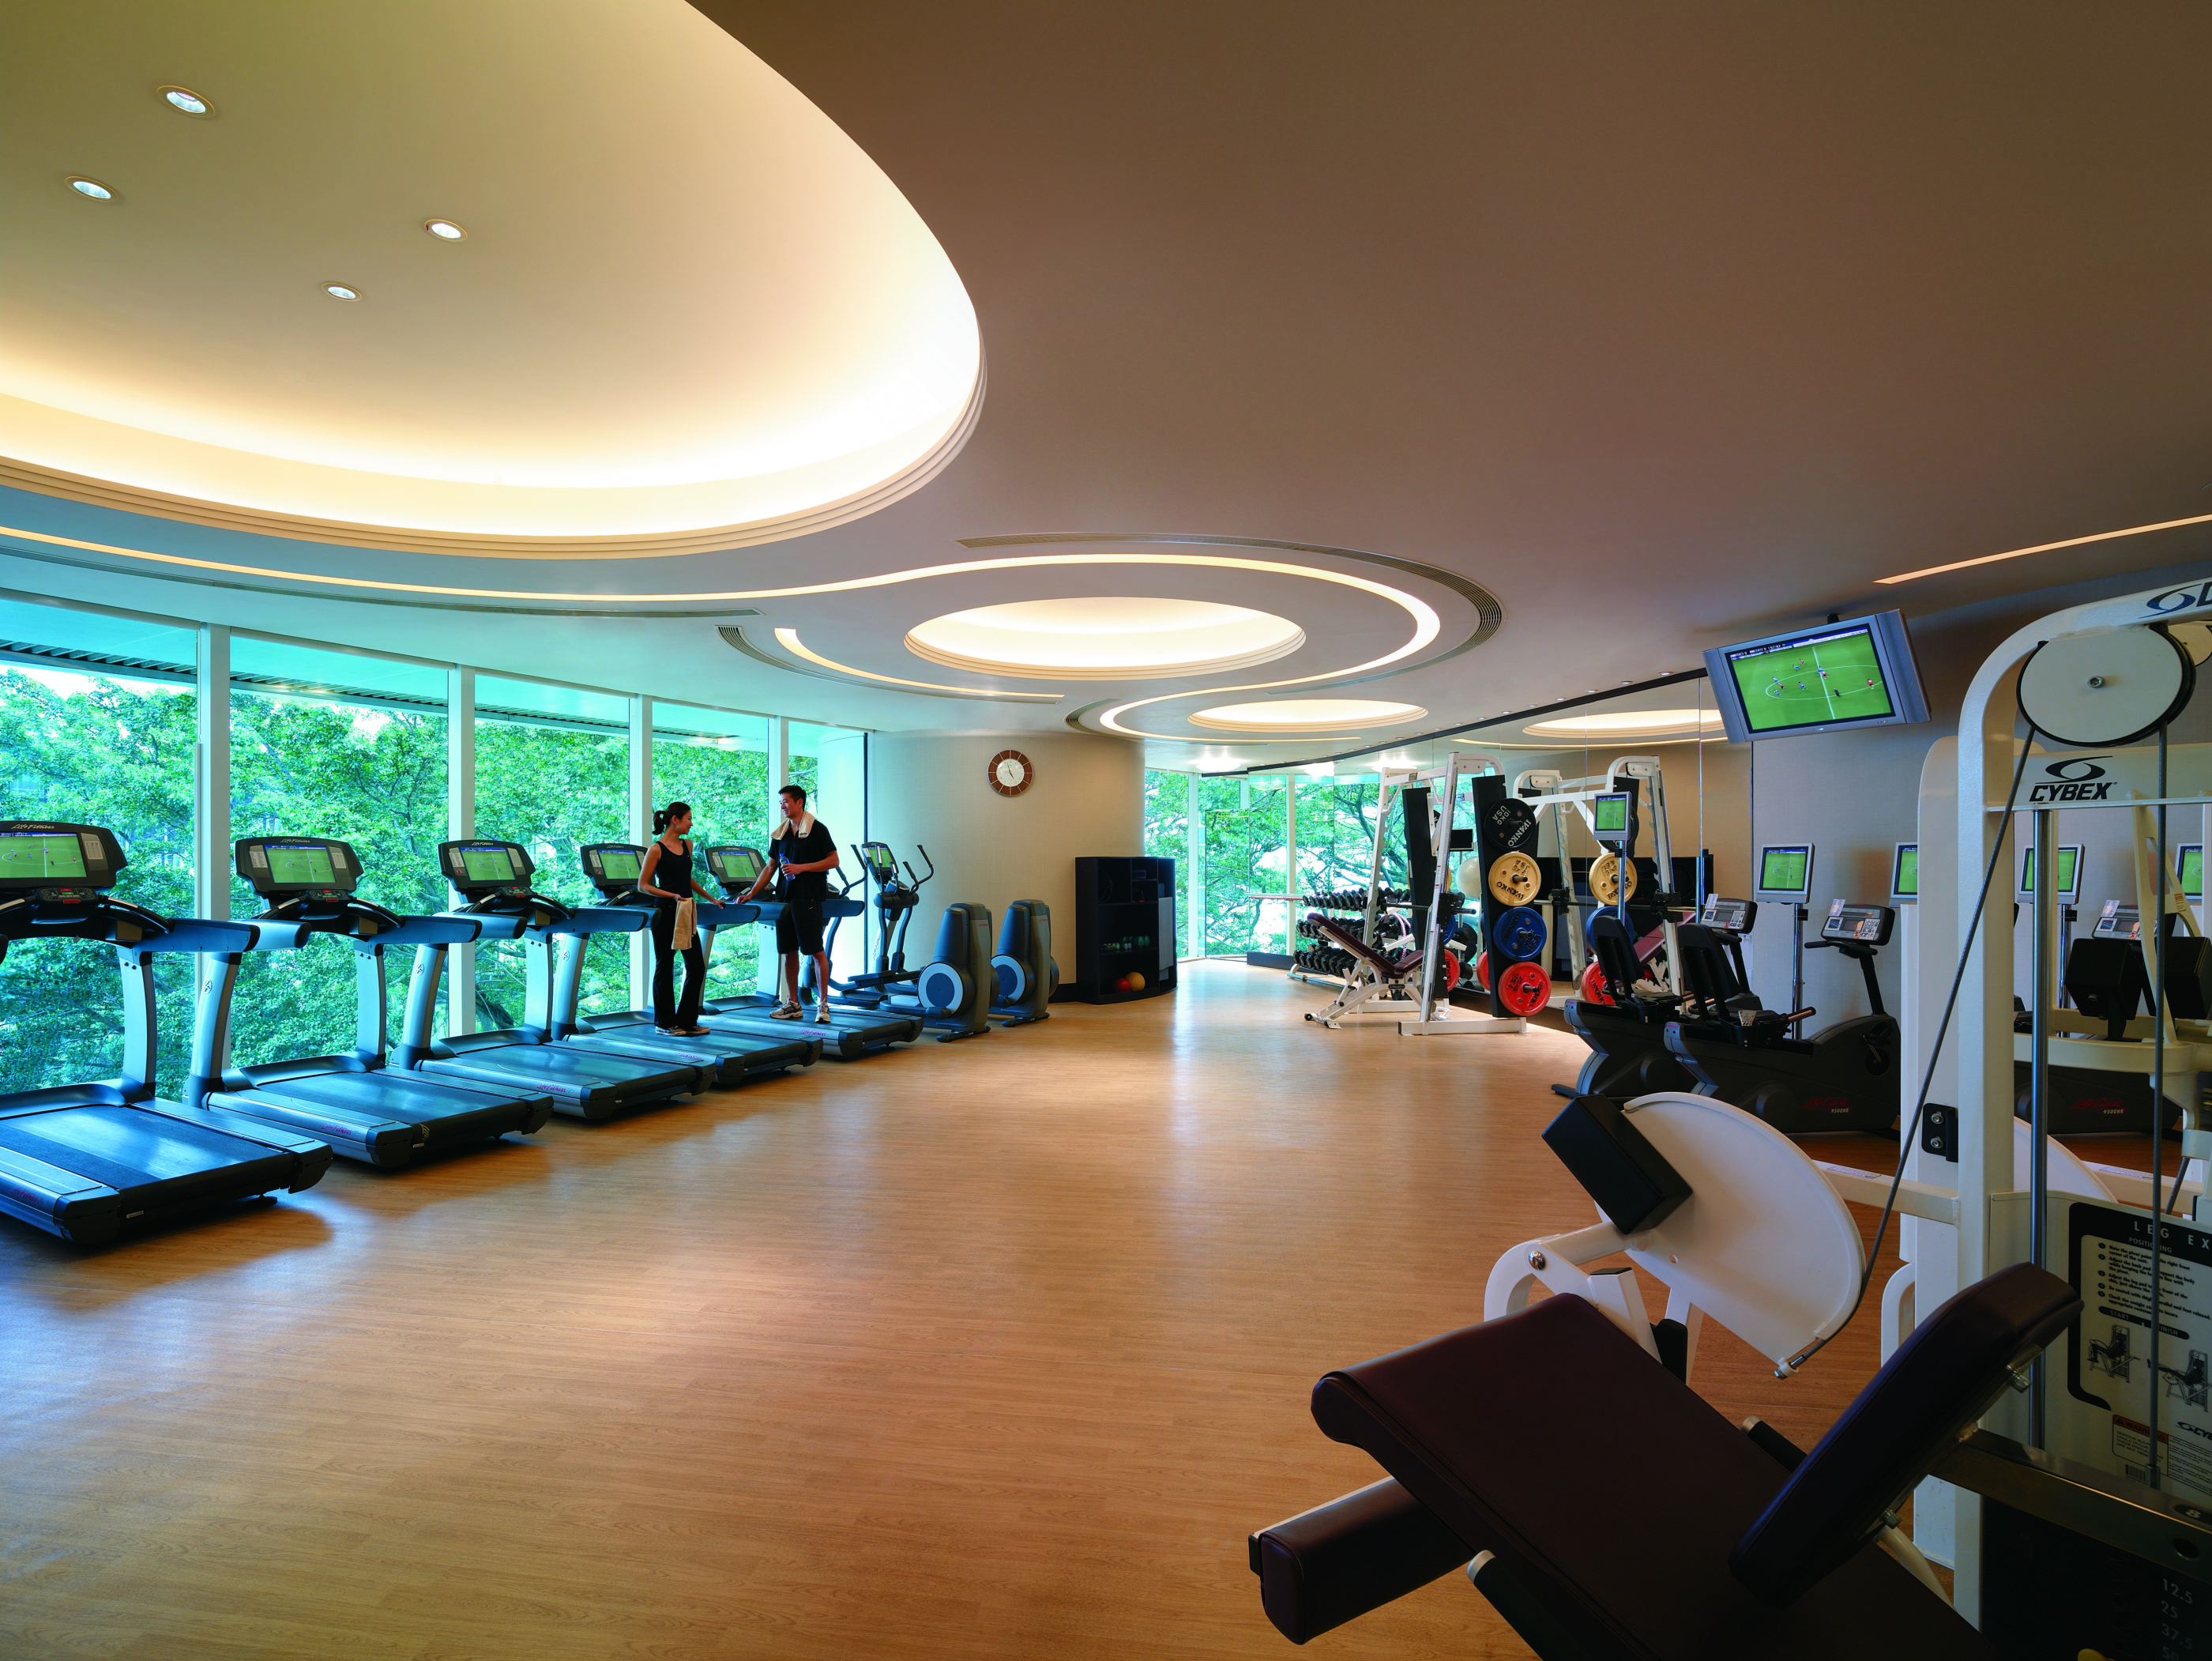 Island Shangri-la Hong Kong Fitness Center